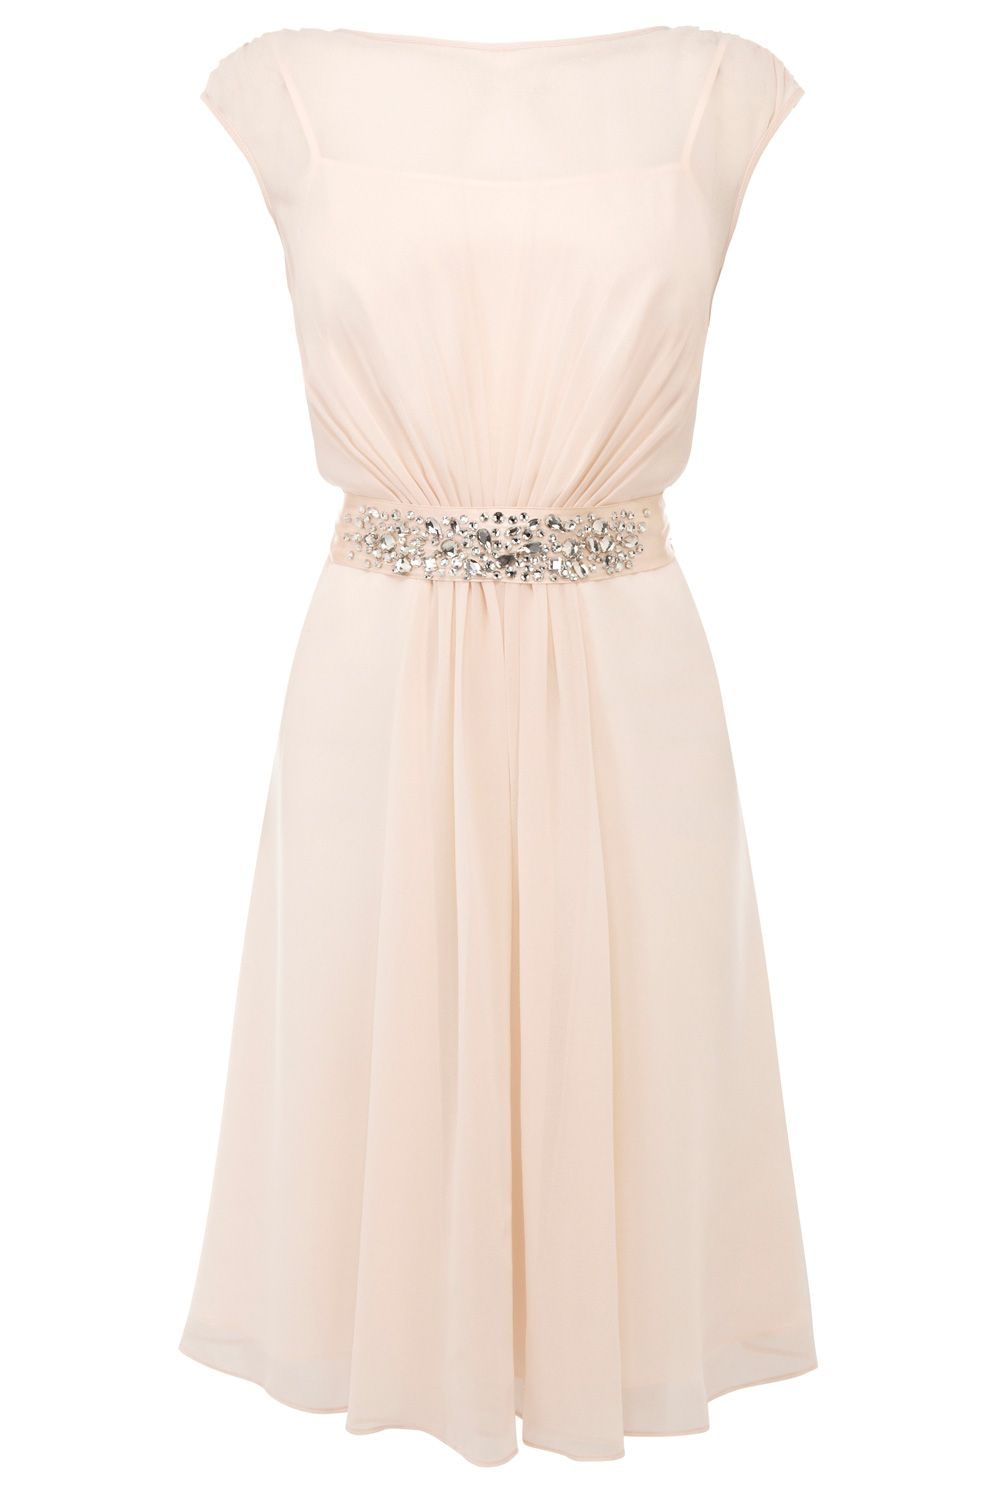 A truly sumptuous short gown perfect for any extra special occasion